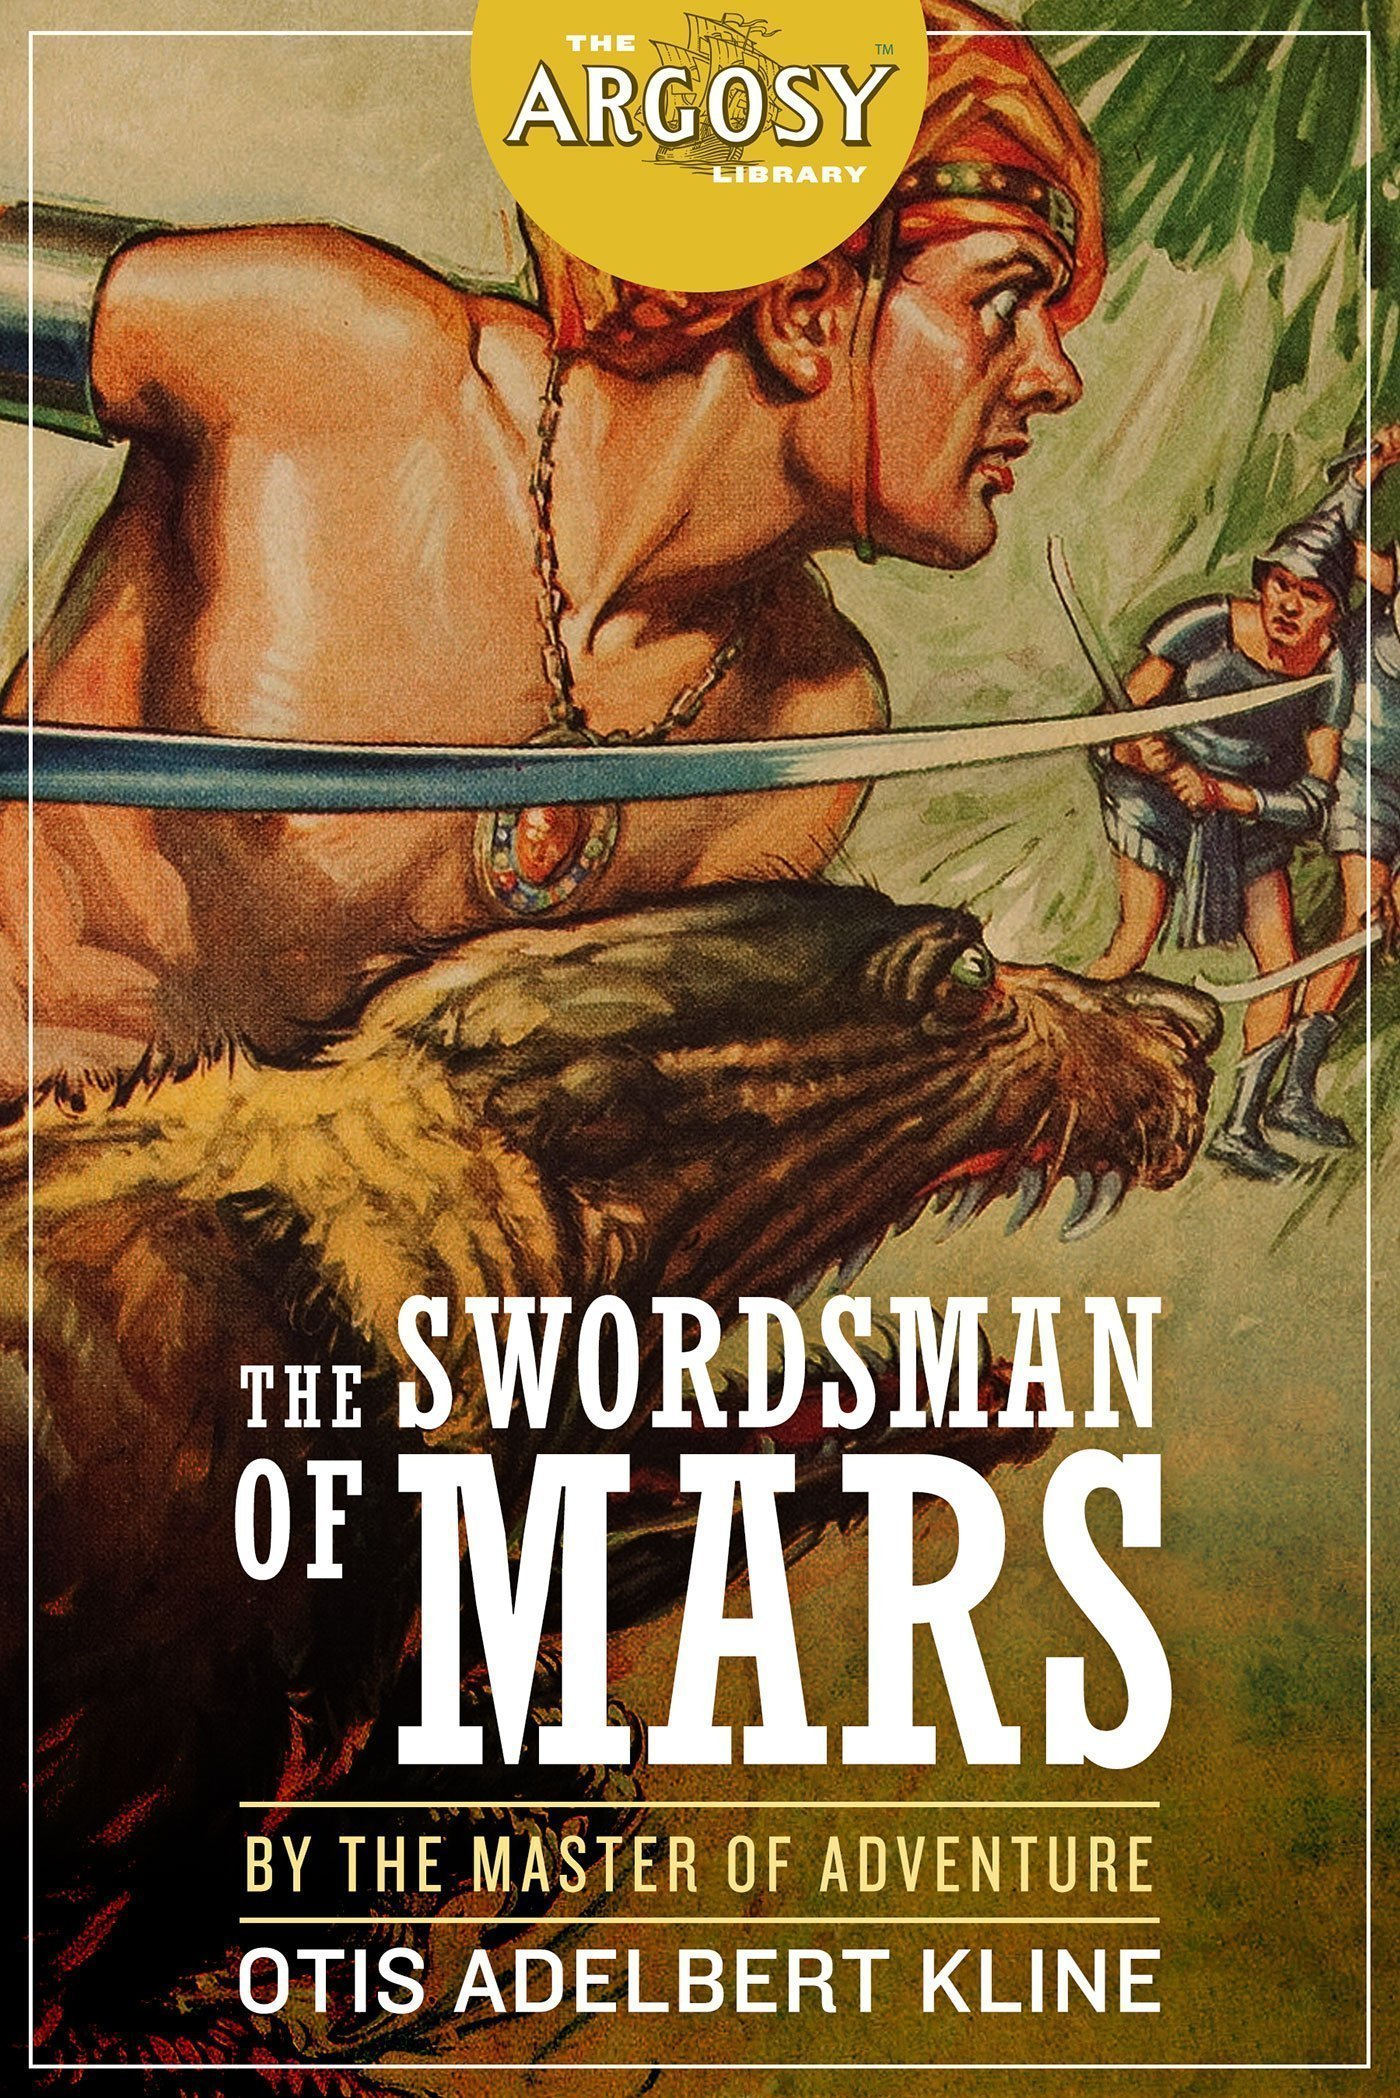 The Swordsman of Mars (The Argosy Library) by Otis Adelbert Kline